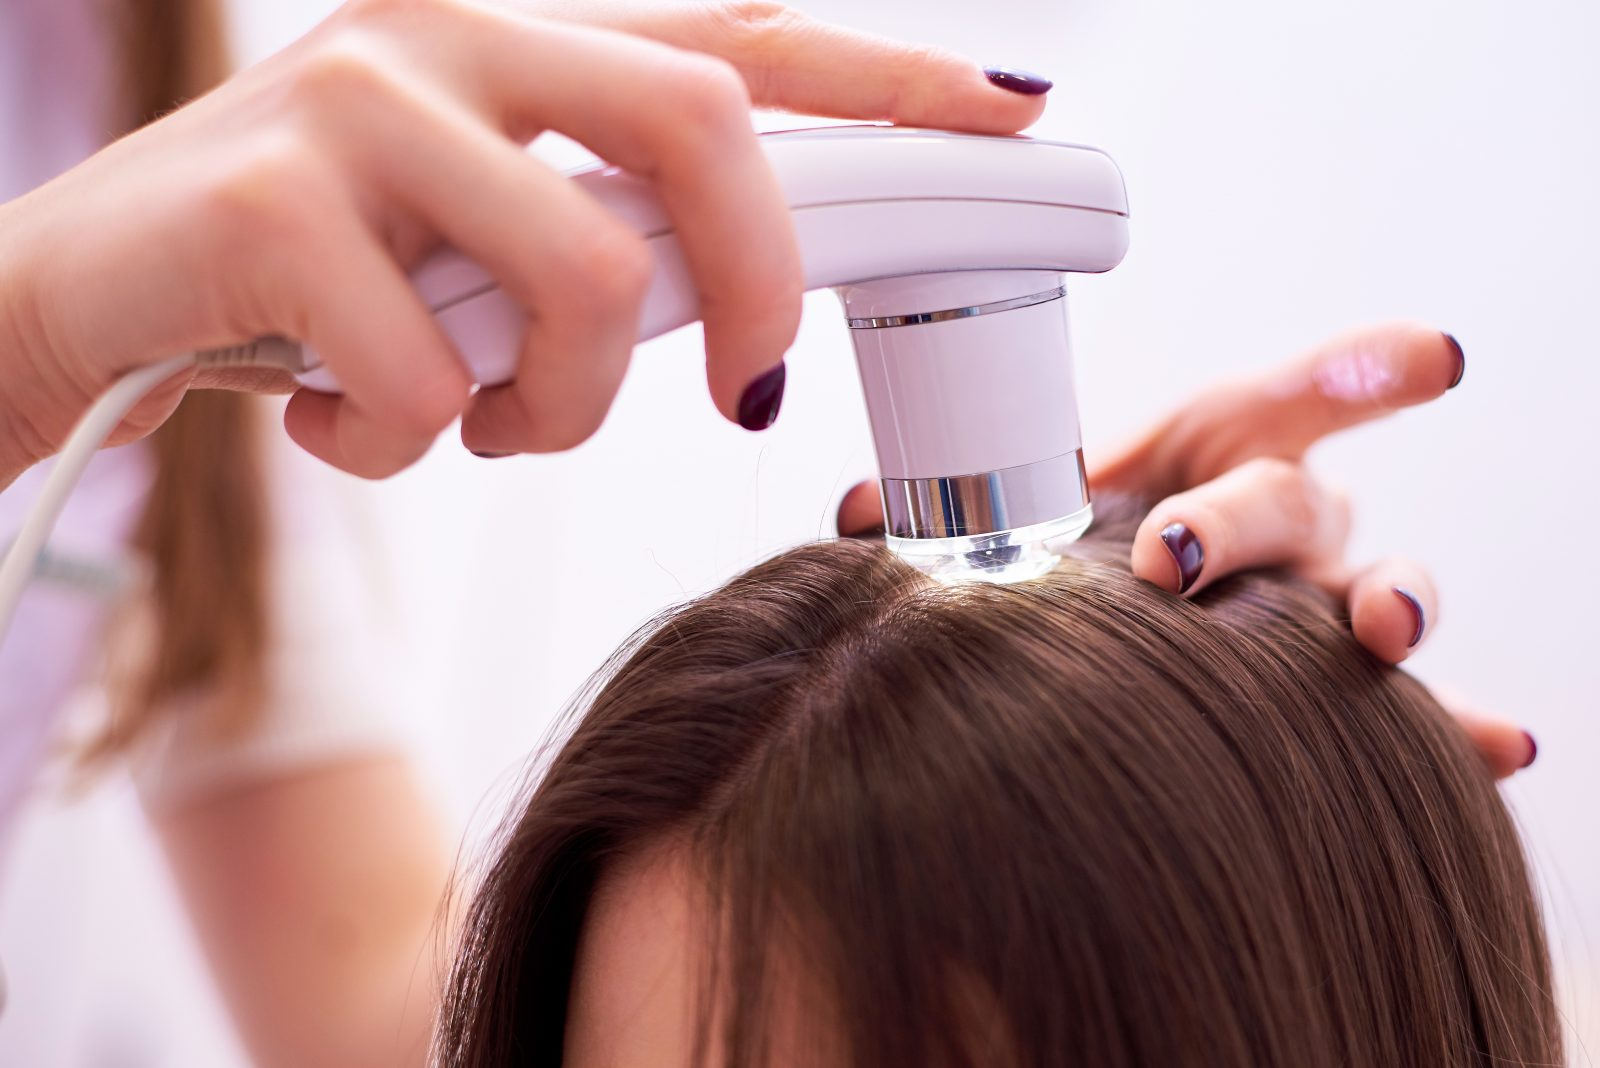 The Use of Medical Treatment,slow level laser light treatment on a patients scalp.